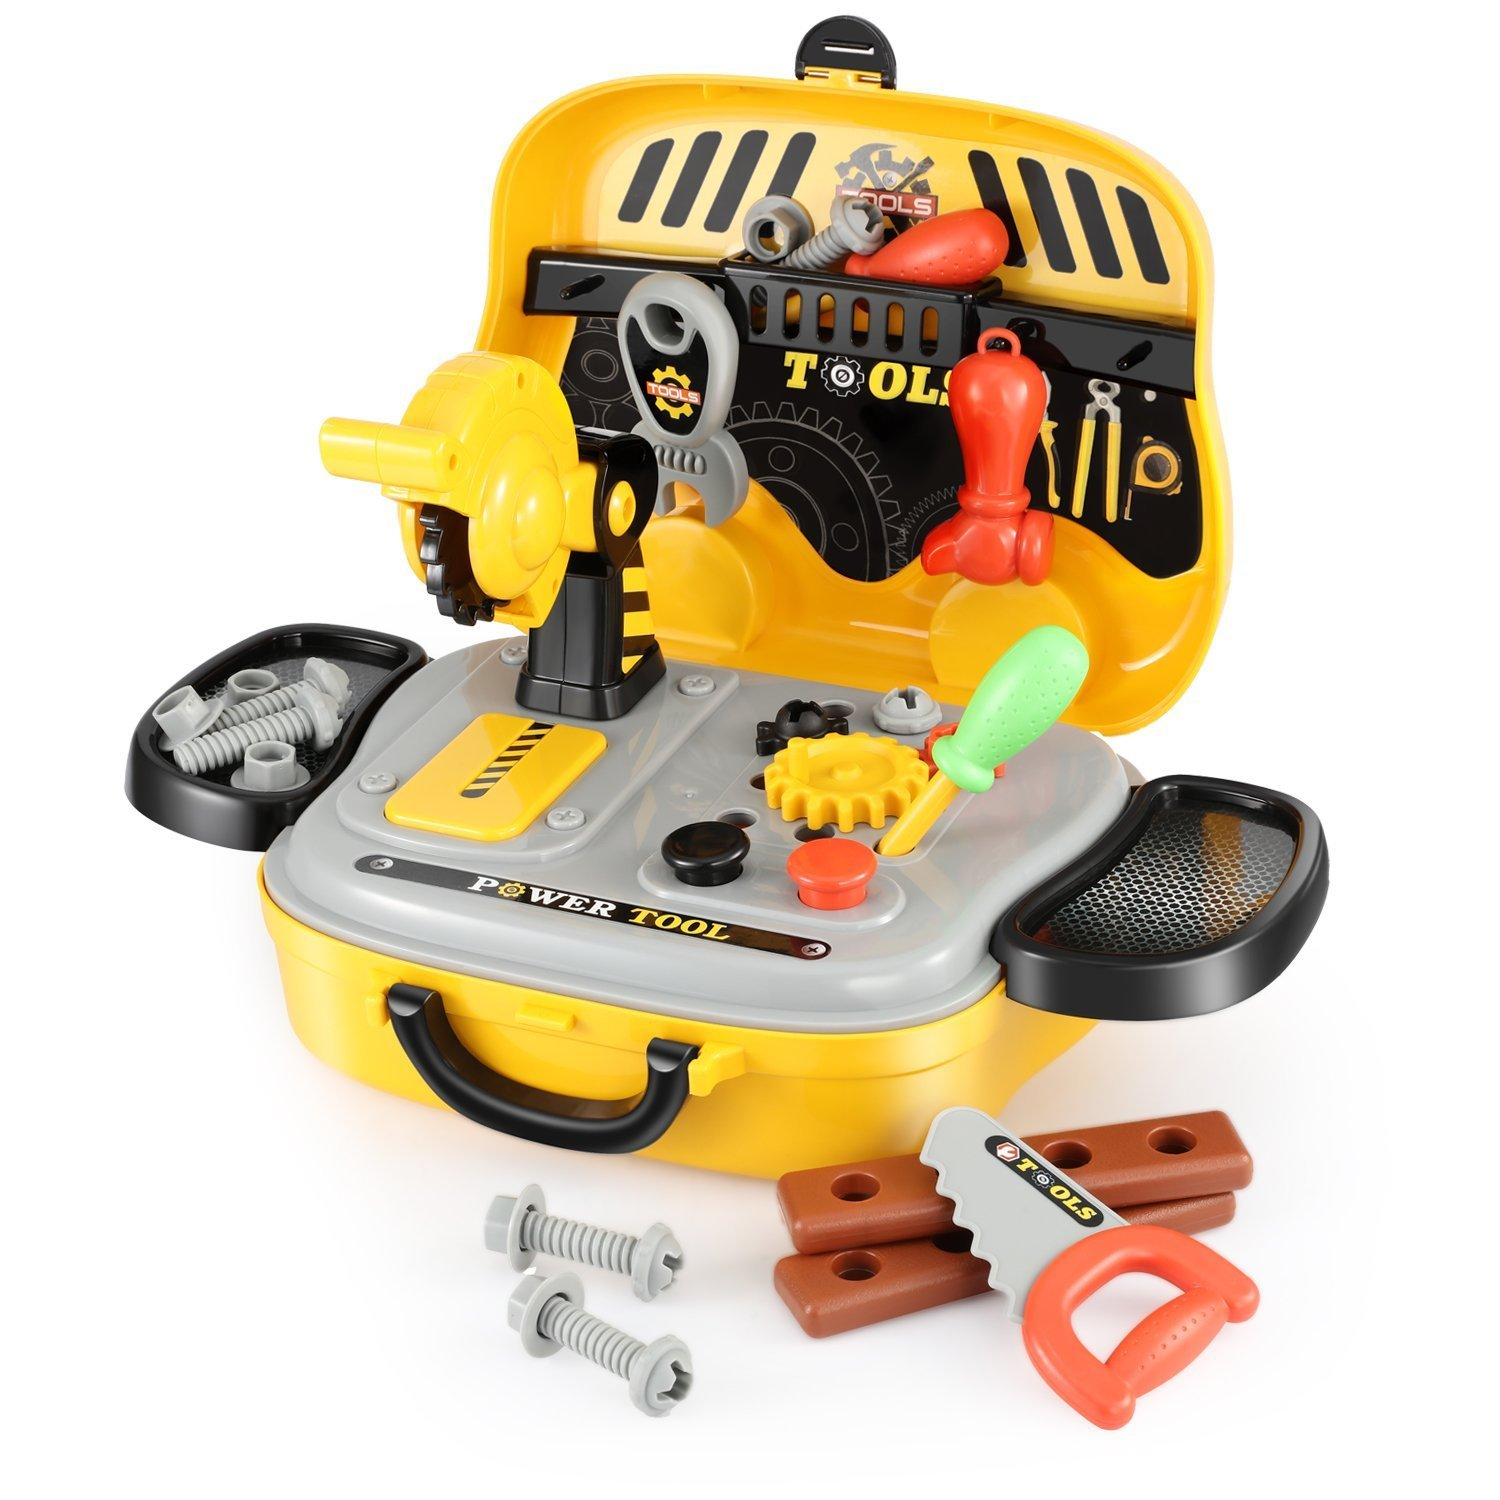 Tool Sets for Children with Carrycase Workbench Accessories Role Play Toy Gift for Boys Girls